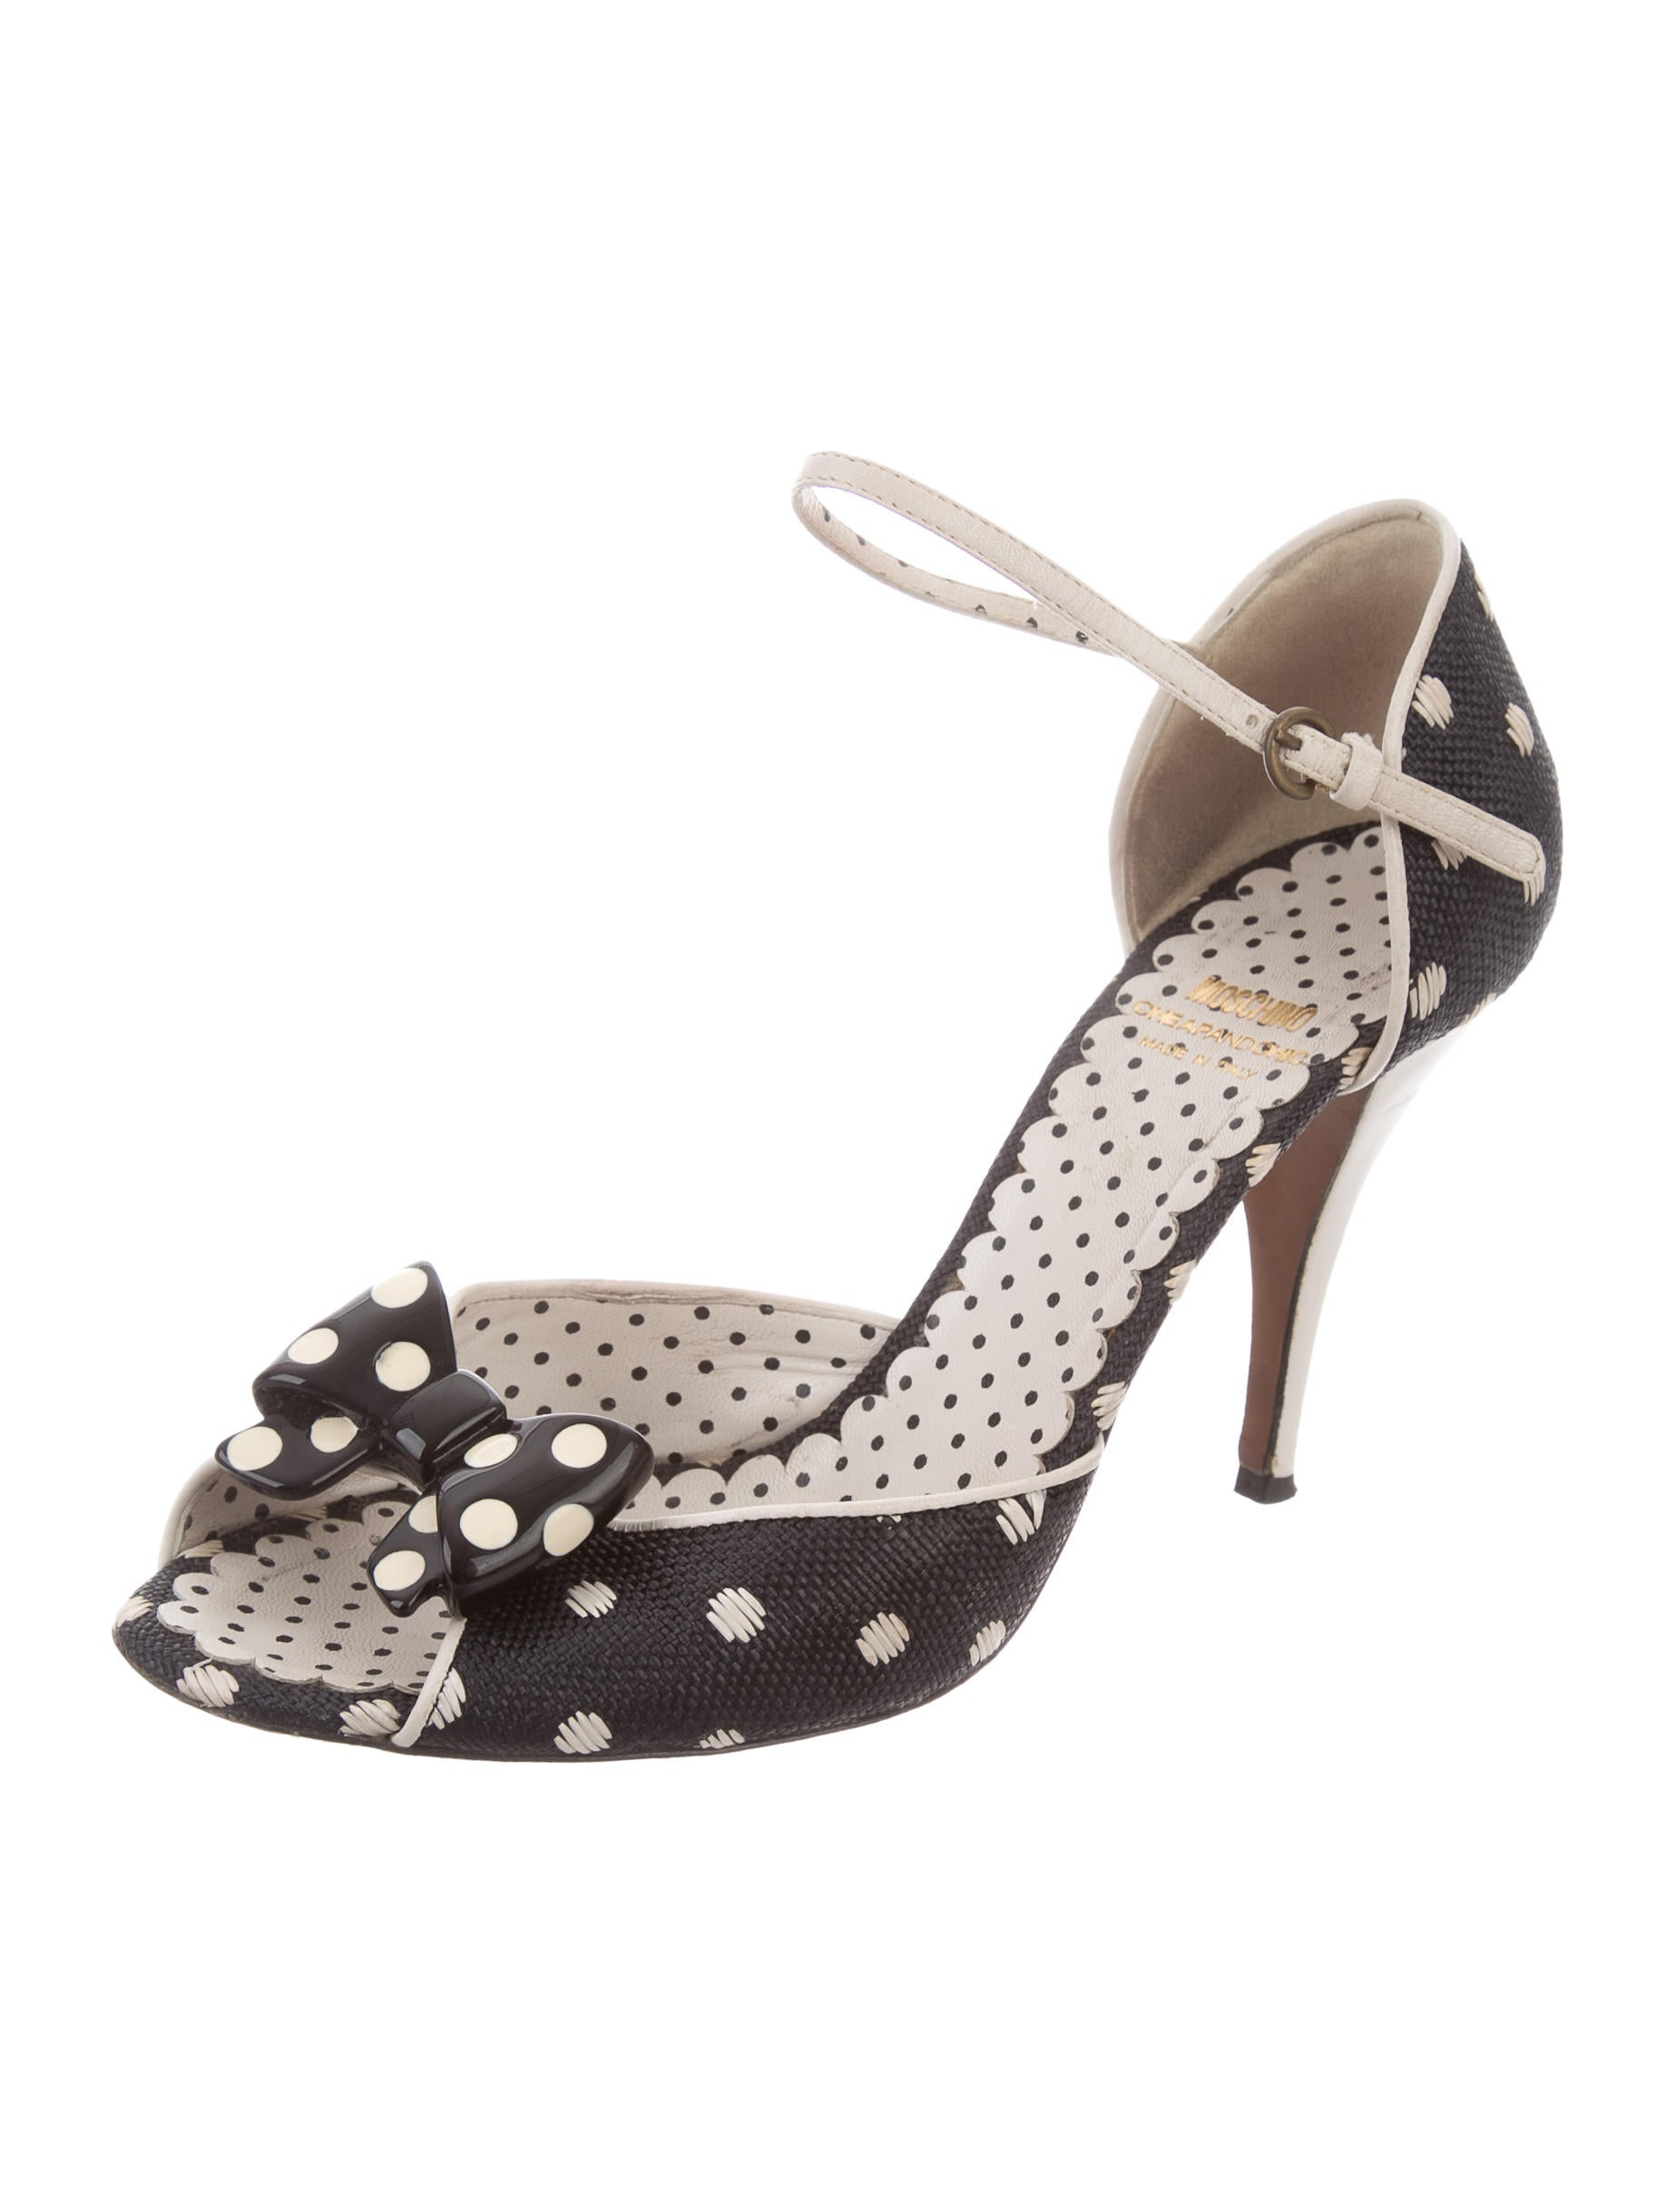 exclusive cheap sale order Moschino Cheap and Chic Woven Bow Pumps from china sale online outlet official site fqy7g